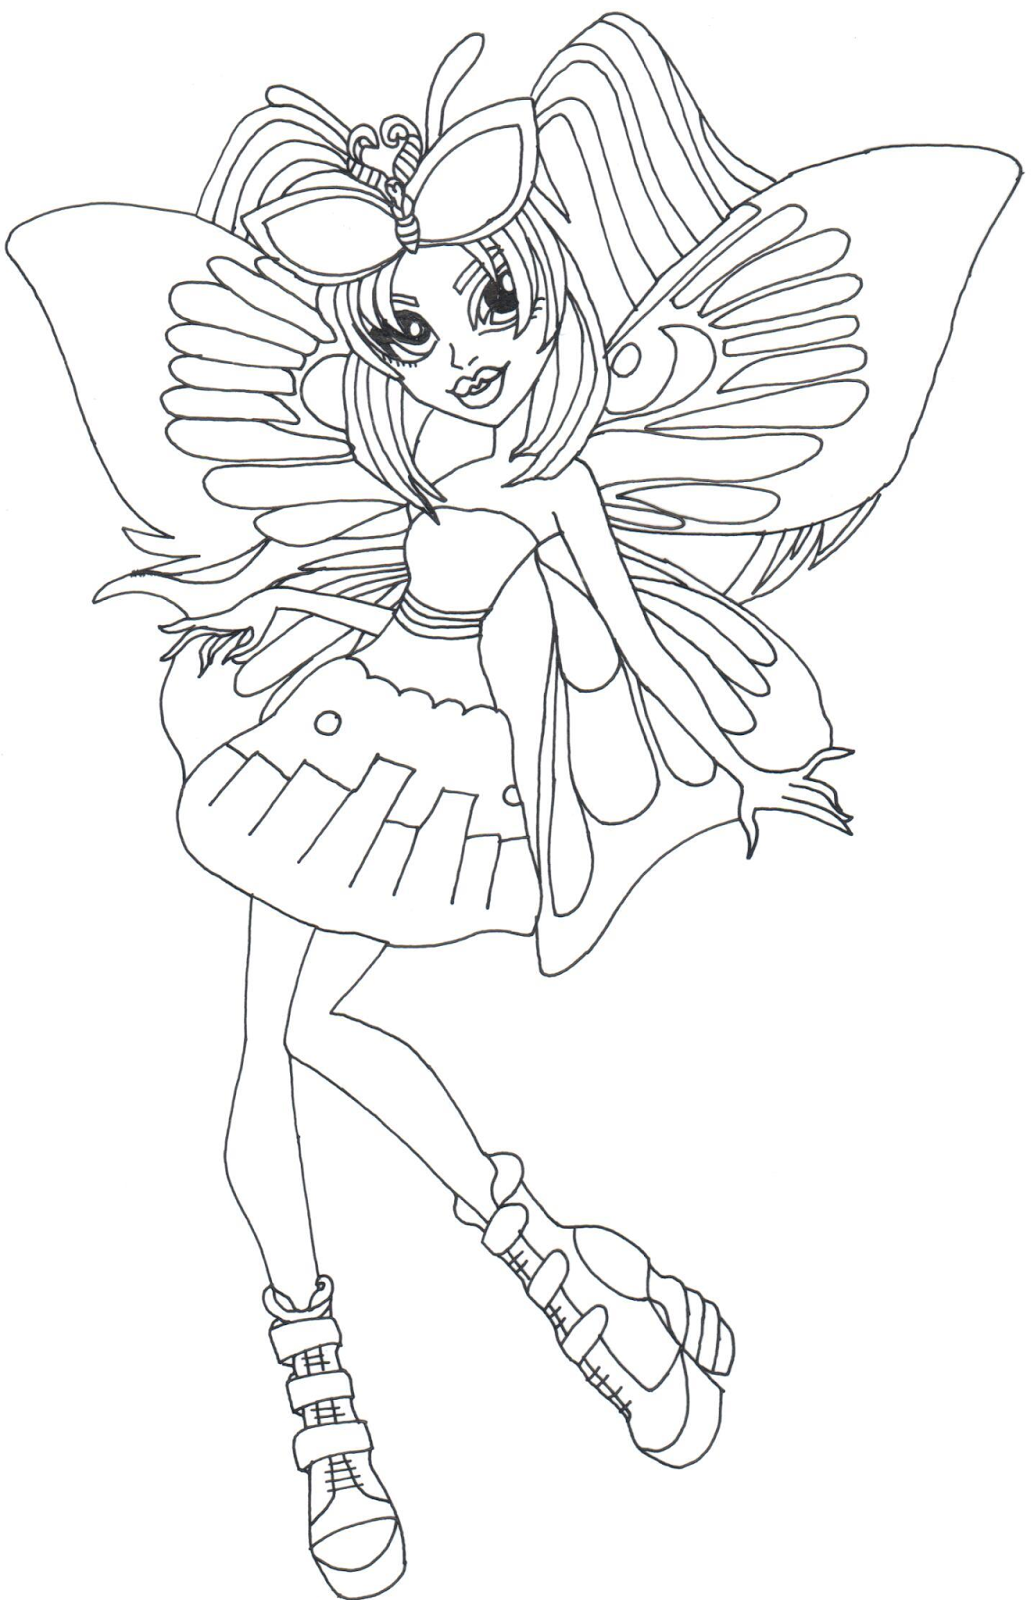 Impeccable image in monster high coloring pages printable